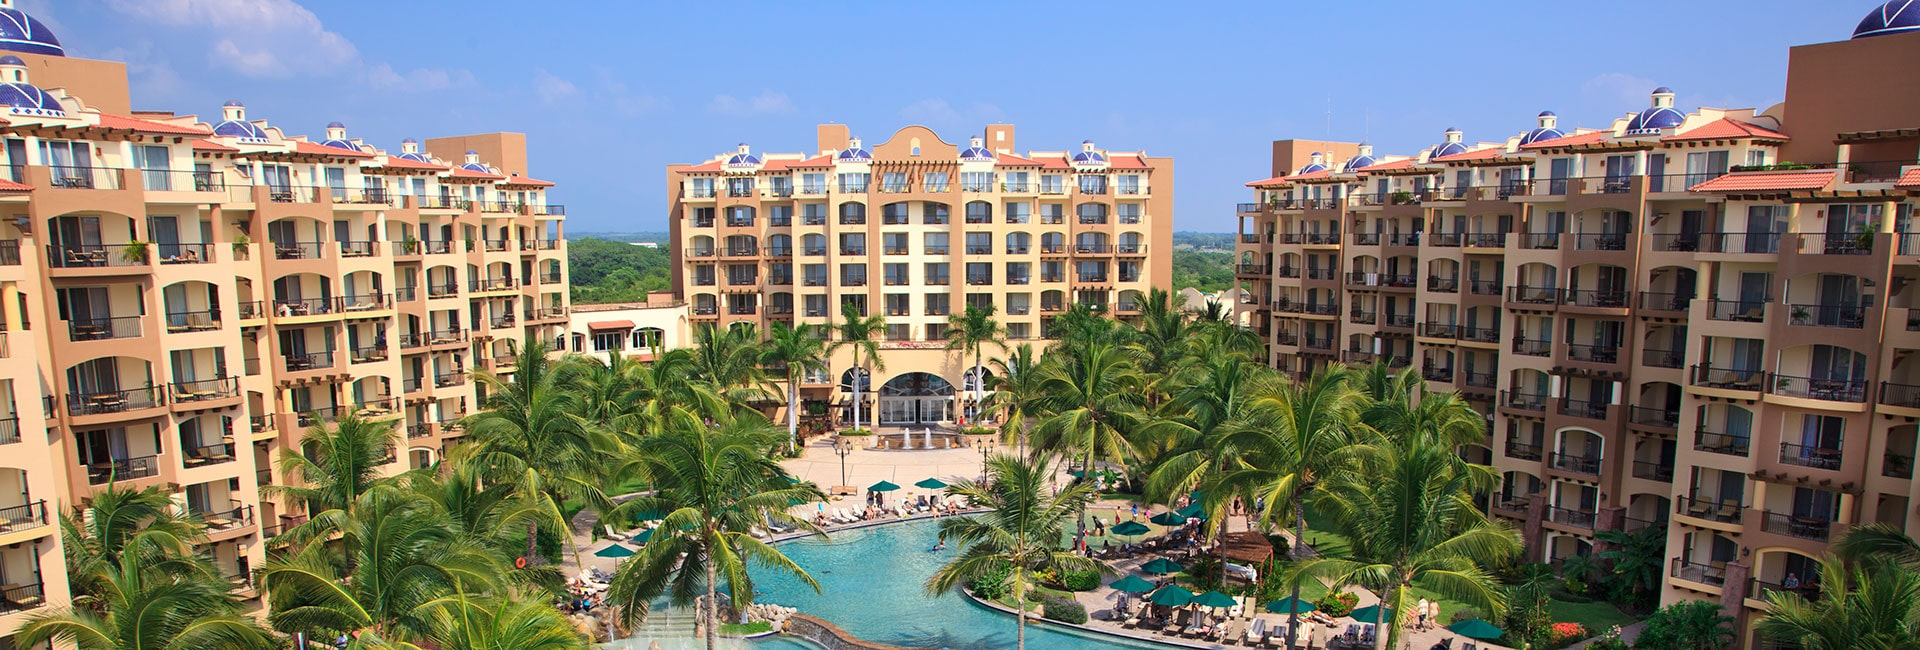 Villa Del Palmar Flamingos One Of Best Resorts In Mexico